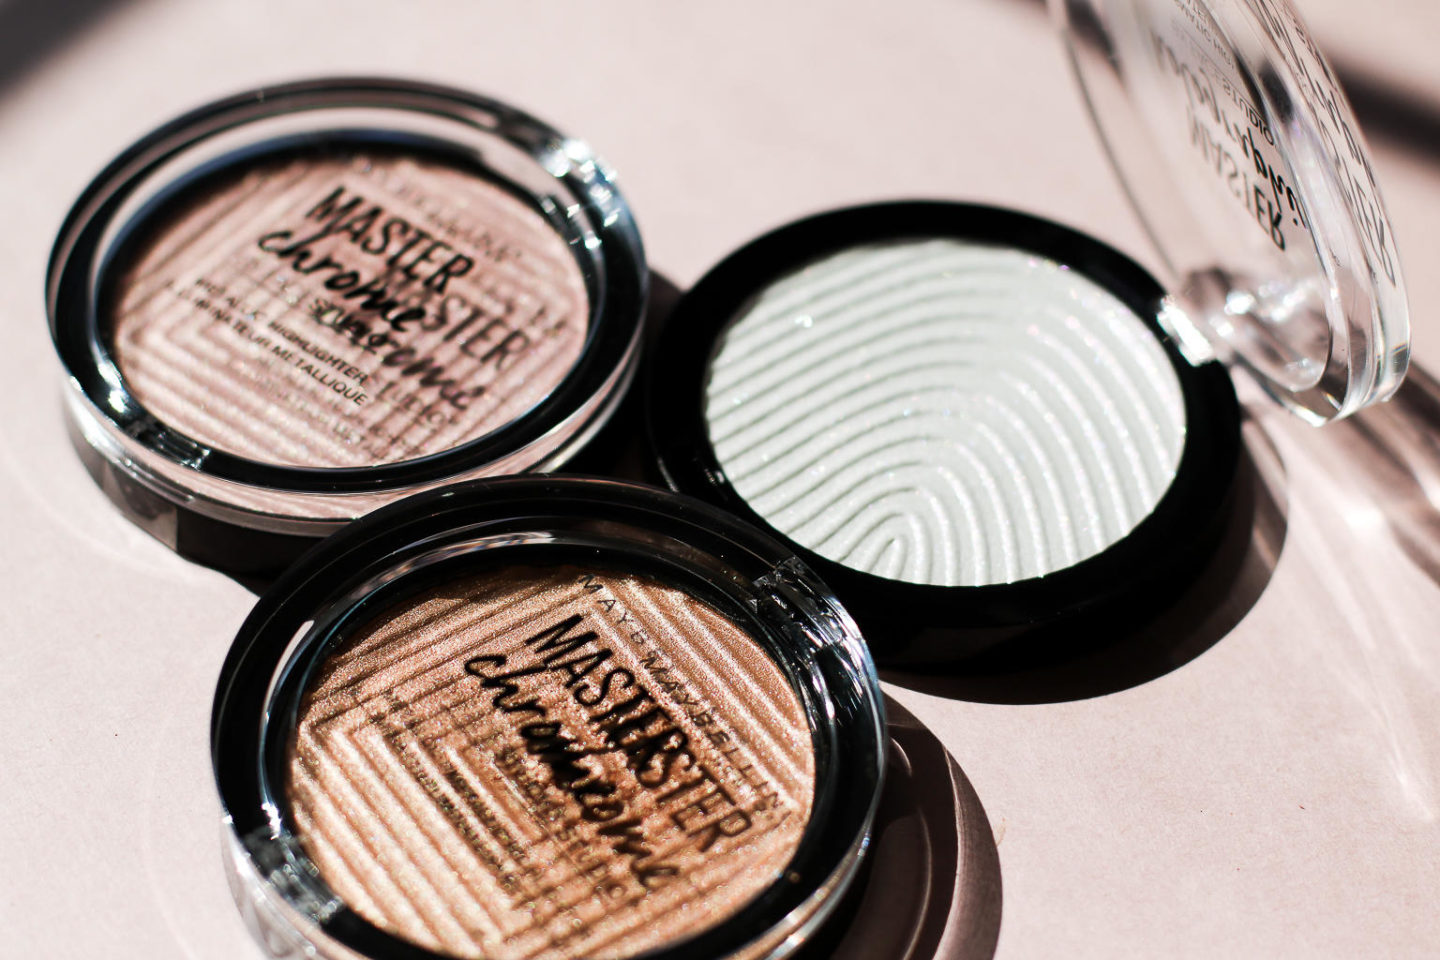 I Tried The Maybelline Master Chrome Metallic Highlighters And I'm Loving The Shine